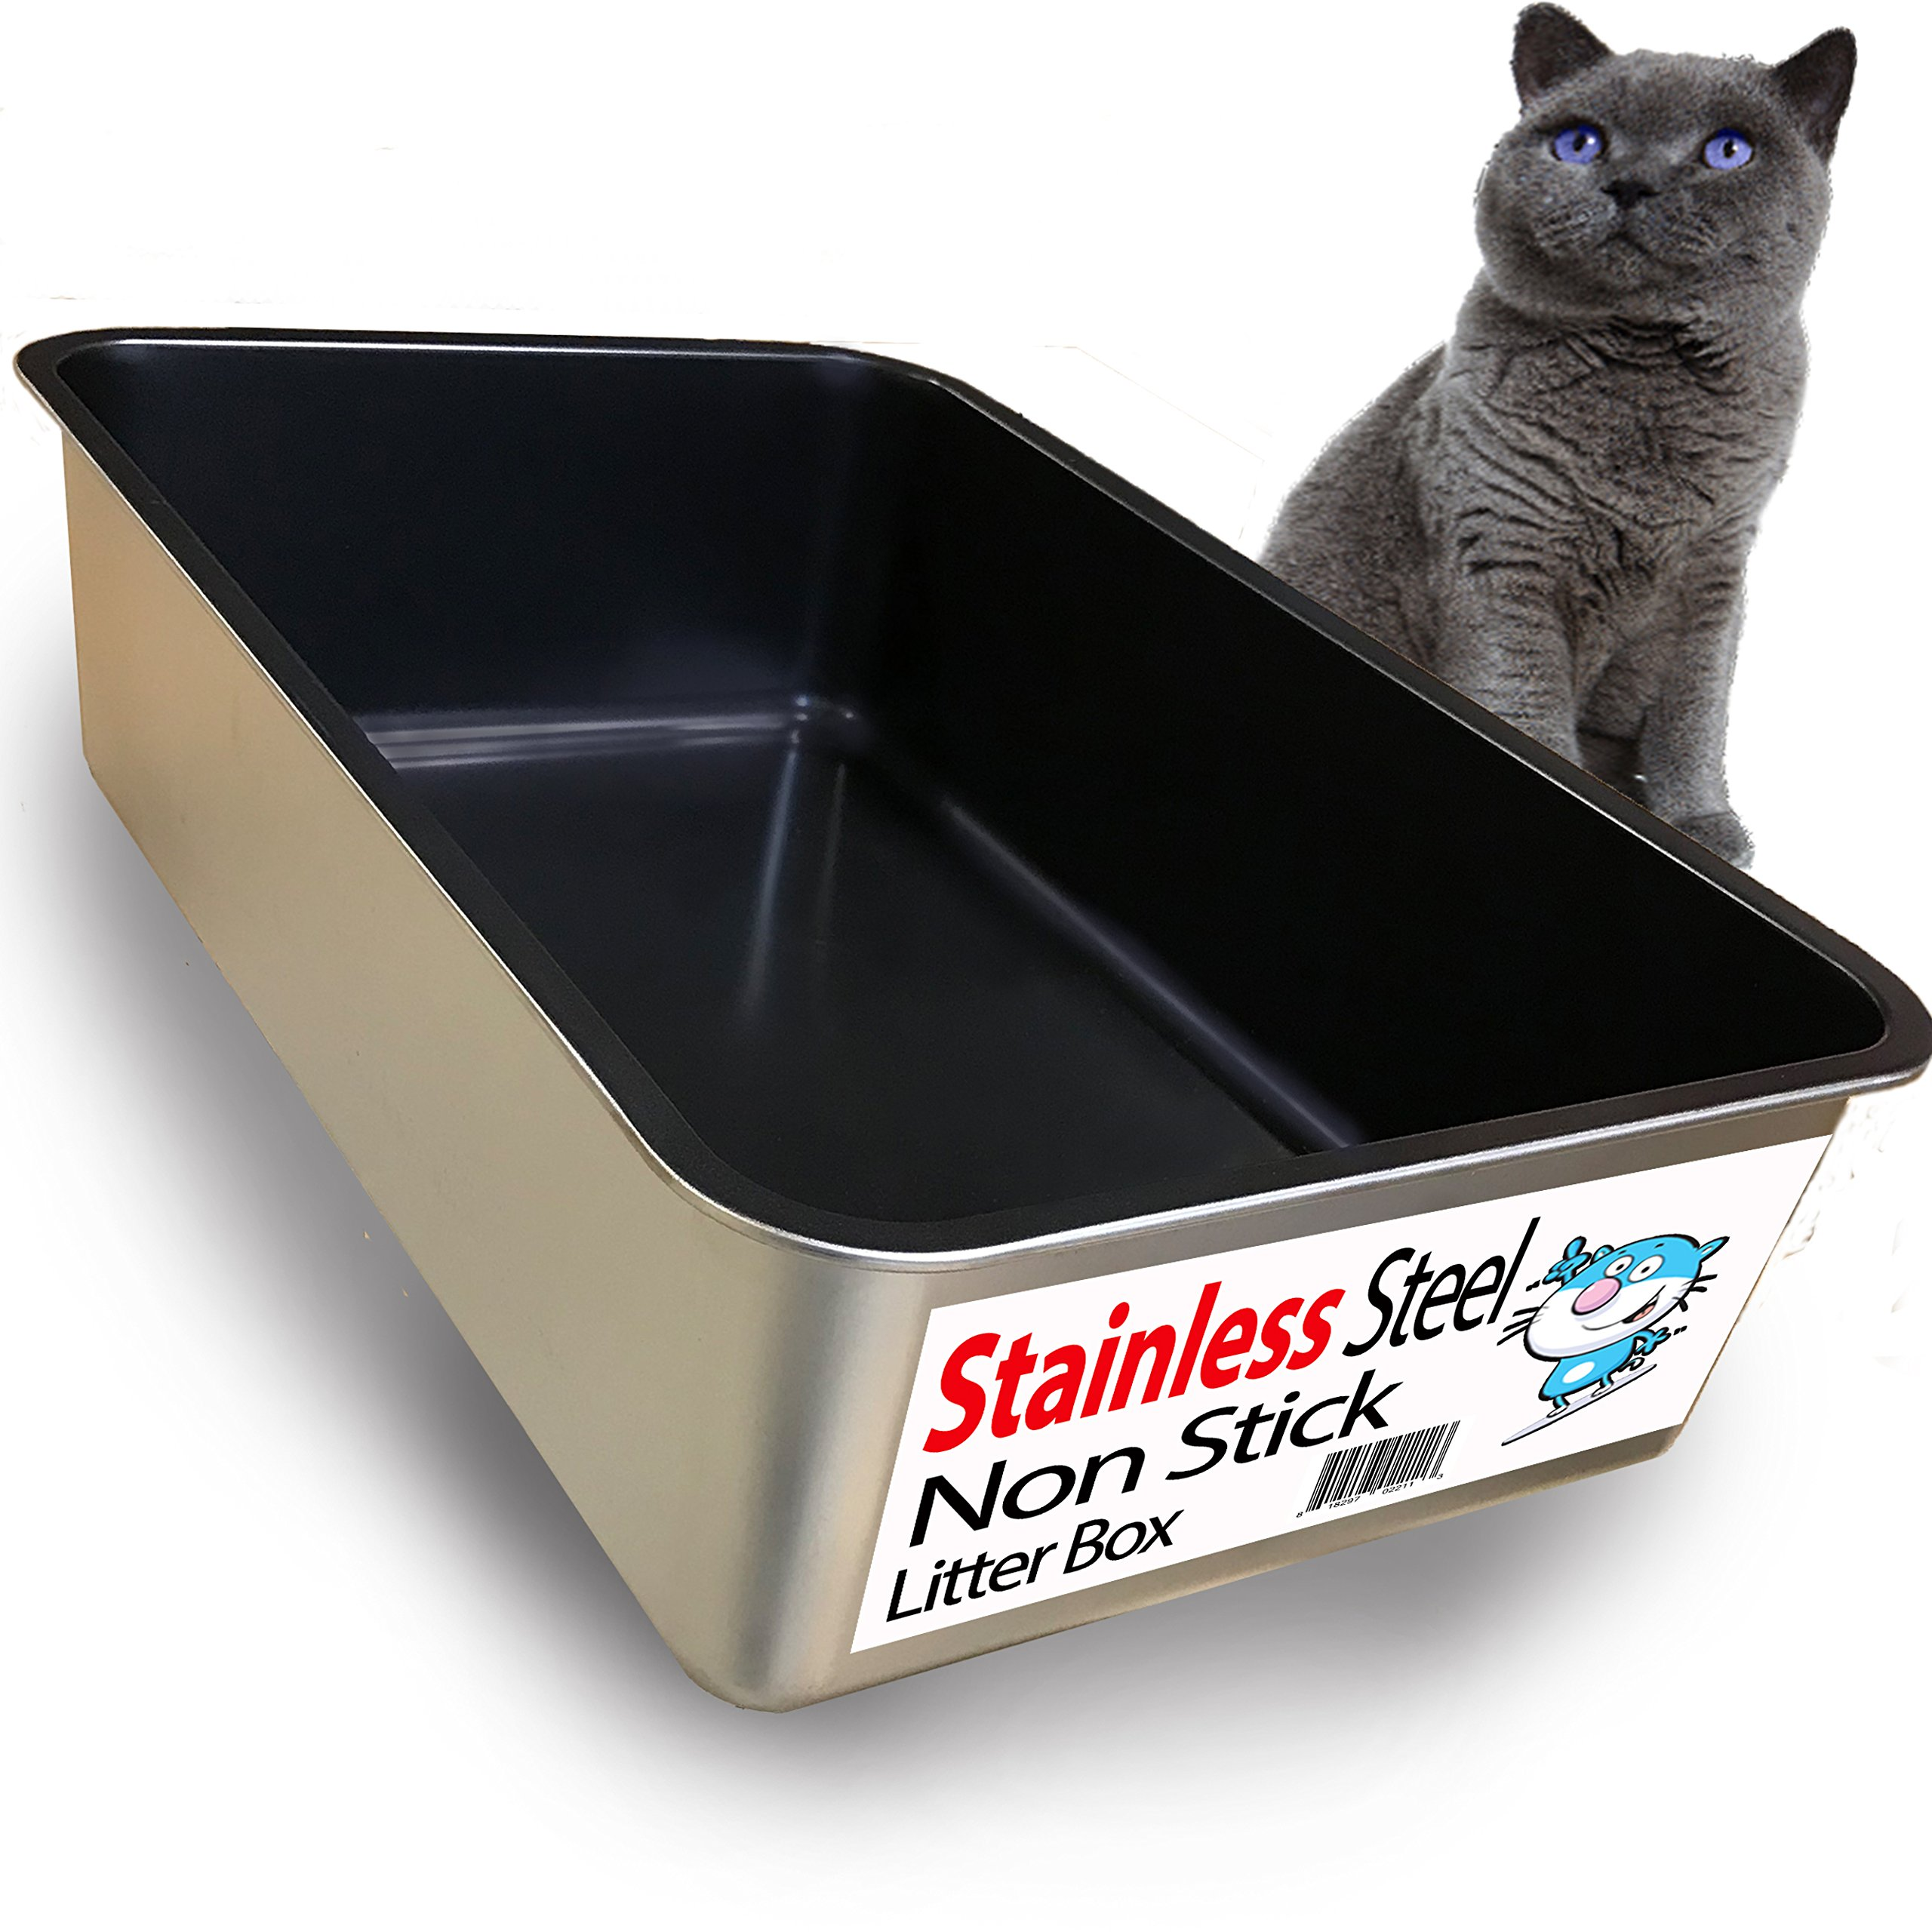 iPrimio Cat Litter Box Non-Stick Plated Stainless Steel XL Litter Pan - Odor and Rust Free - Easy to Clean & Designed by Cat Owners - No Residue Build up by iPrimio